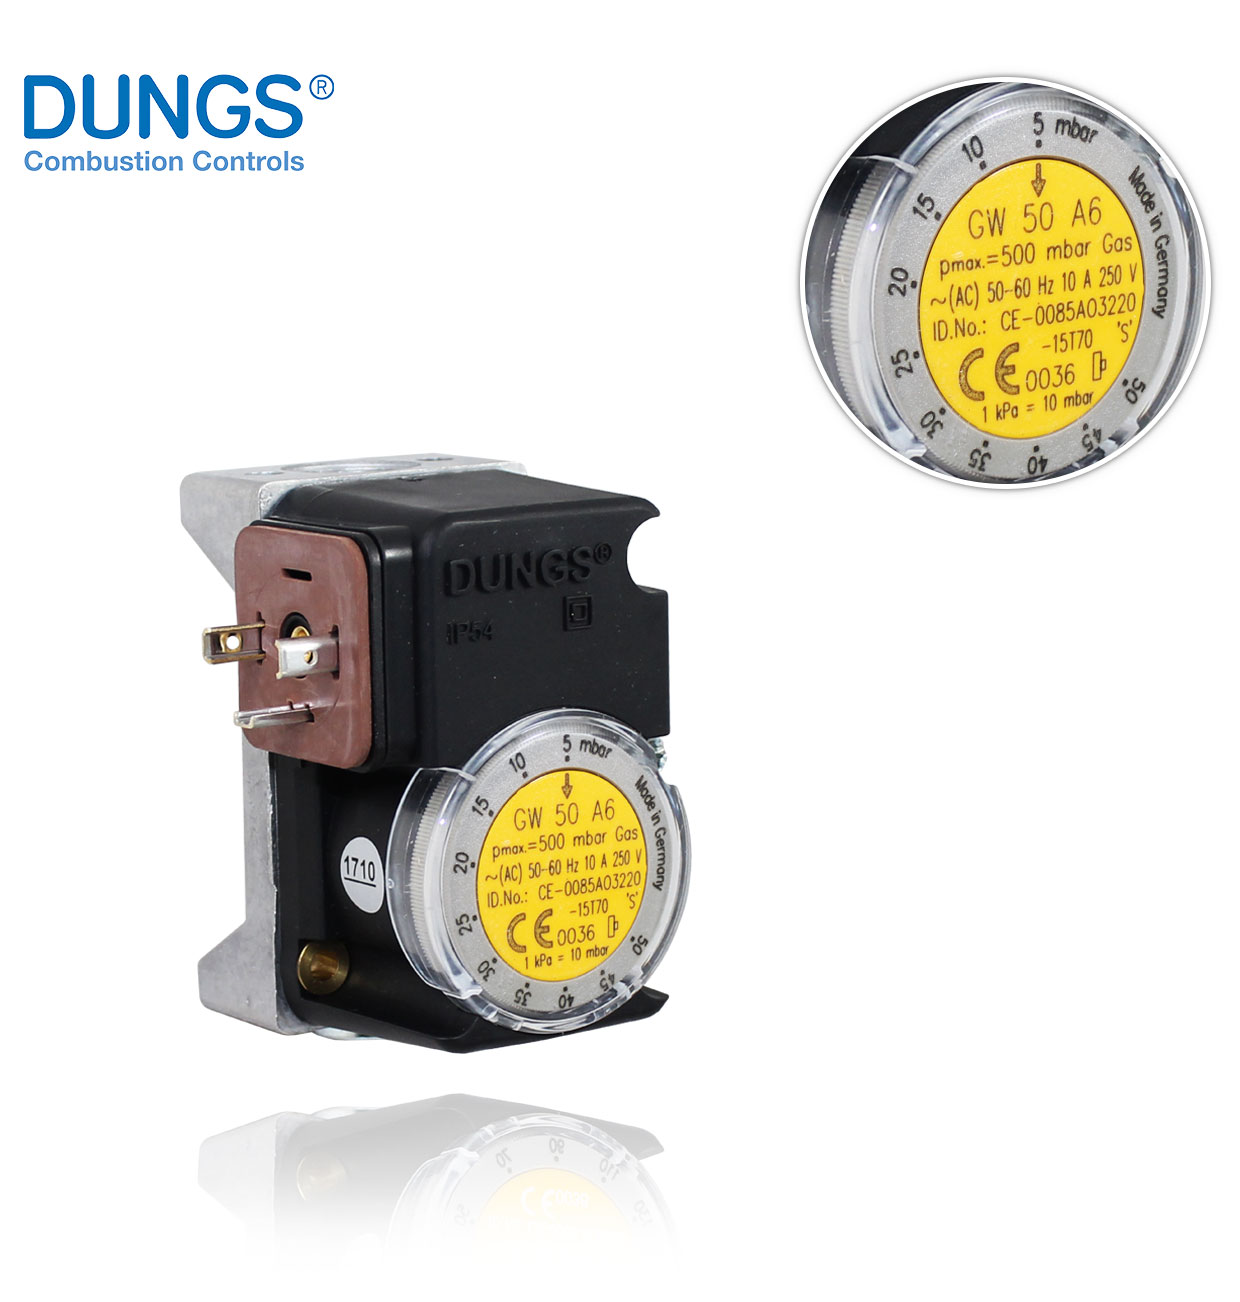 GW 50 A6 (A4) DUNGS PRESSURE SWITCH